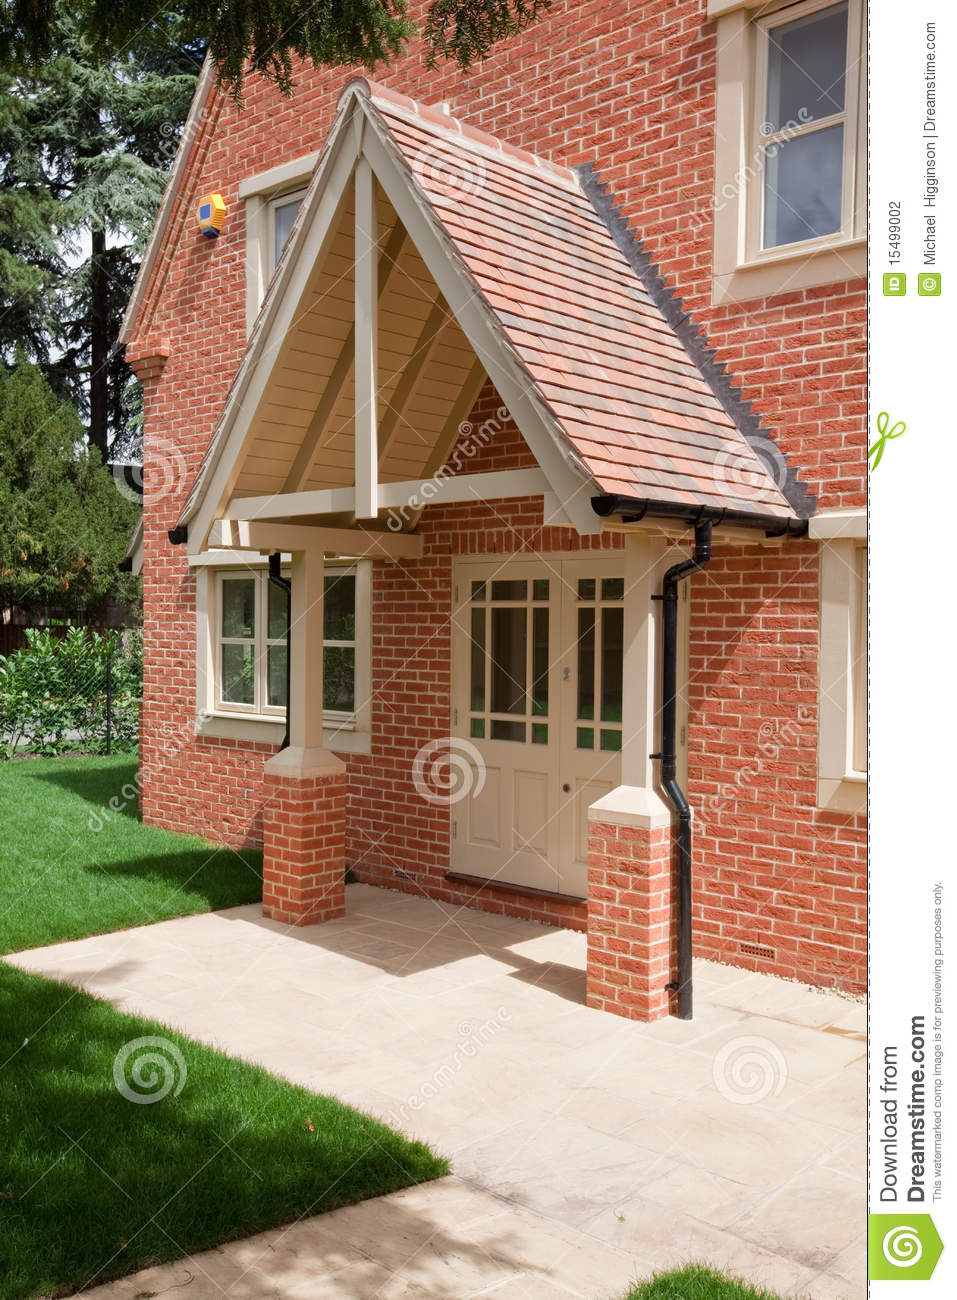 House Canopy Stock Photography Image 15499002